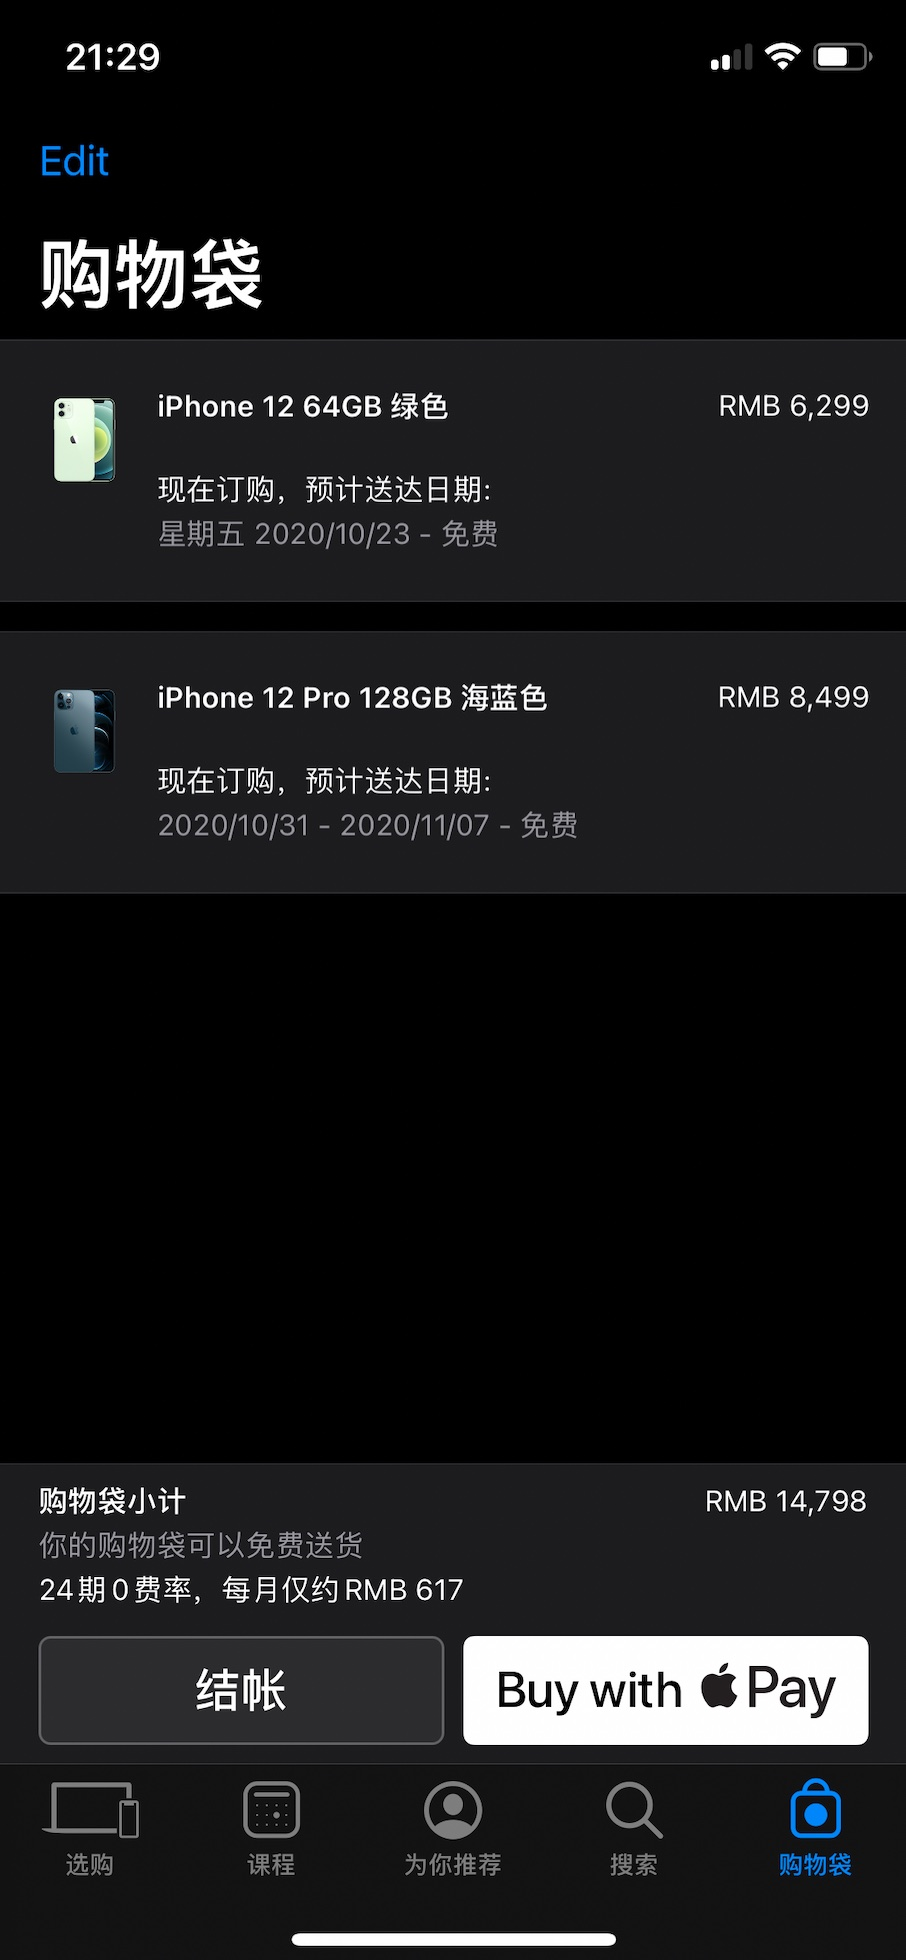 Apple China website briefly crashes due to too many visits as pre-orders for iPhone 12, iPhone 12 Pro begin-cnTechPost